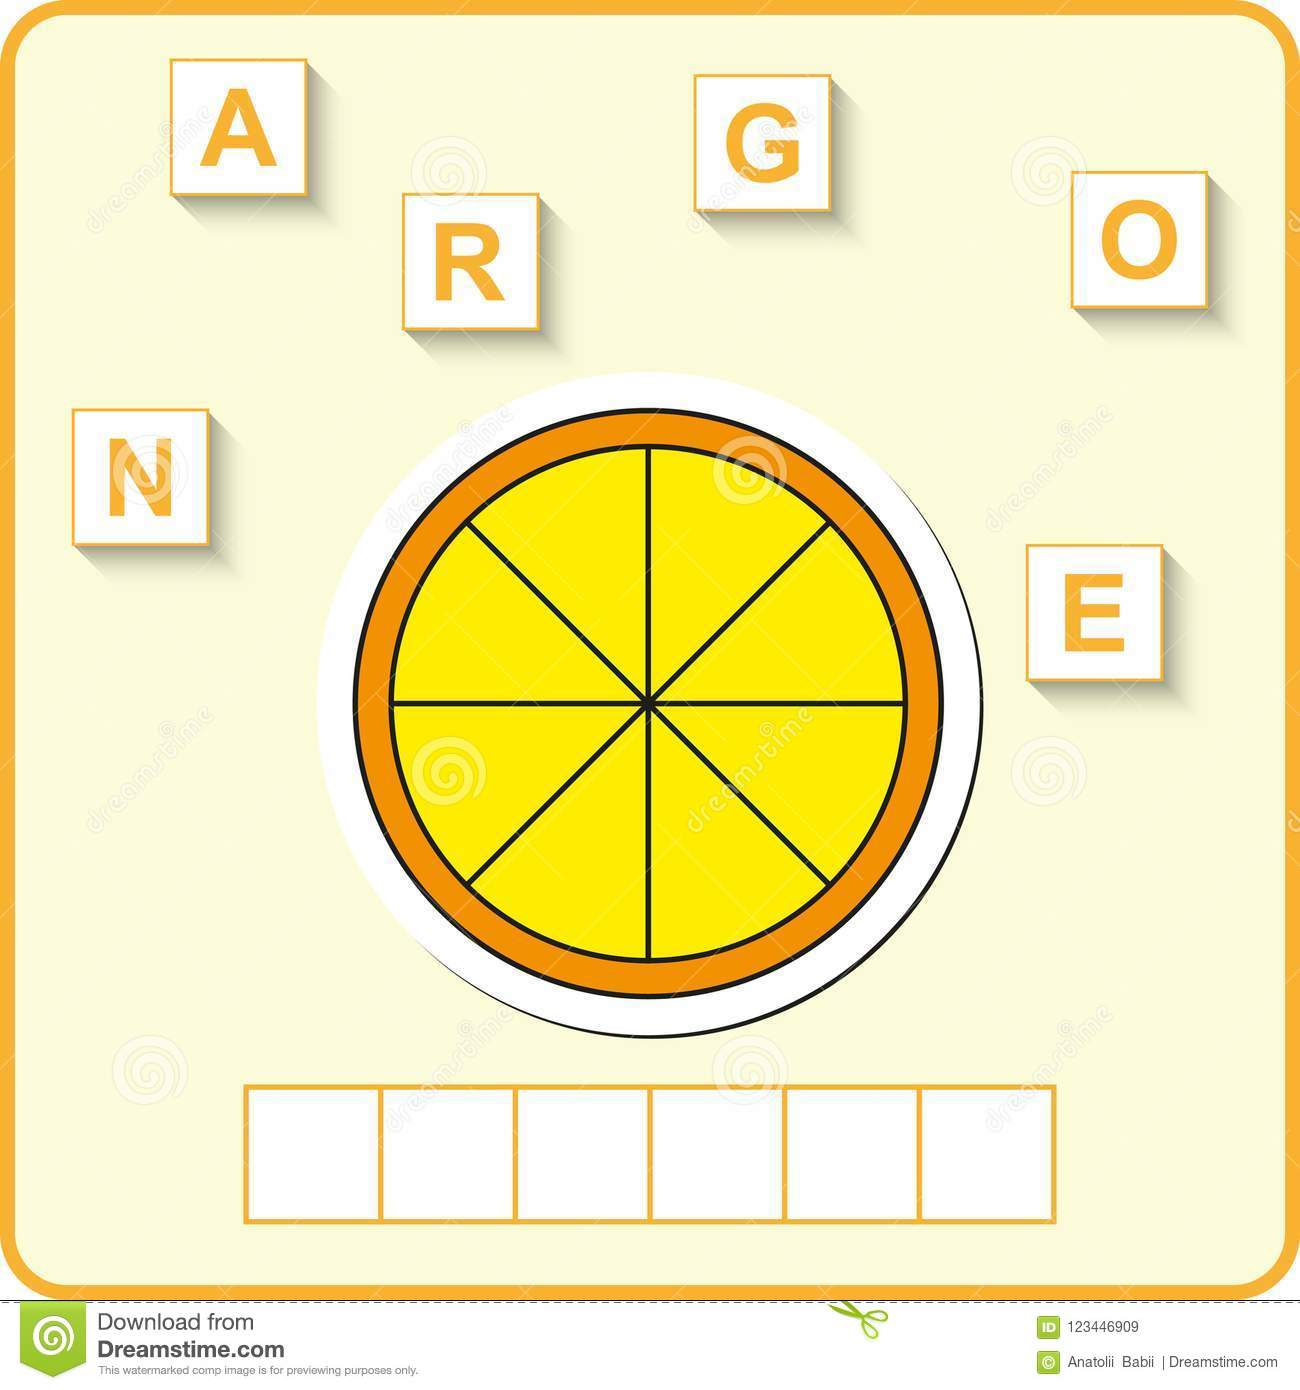 Worksheet For Education Words Puzzle Educational Game For